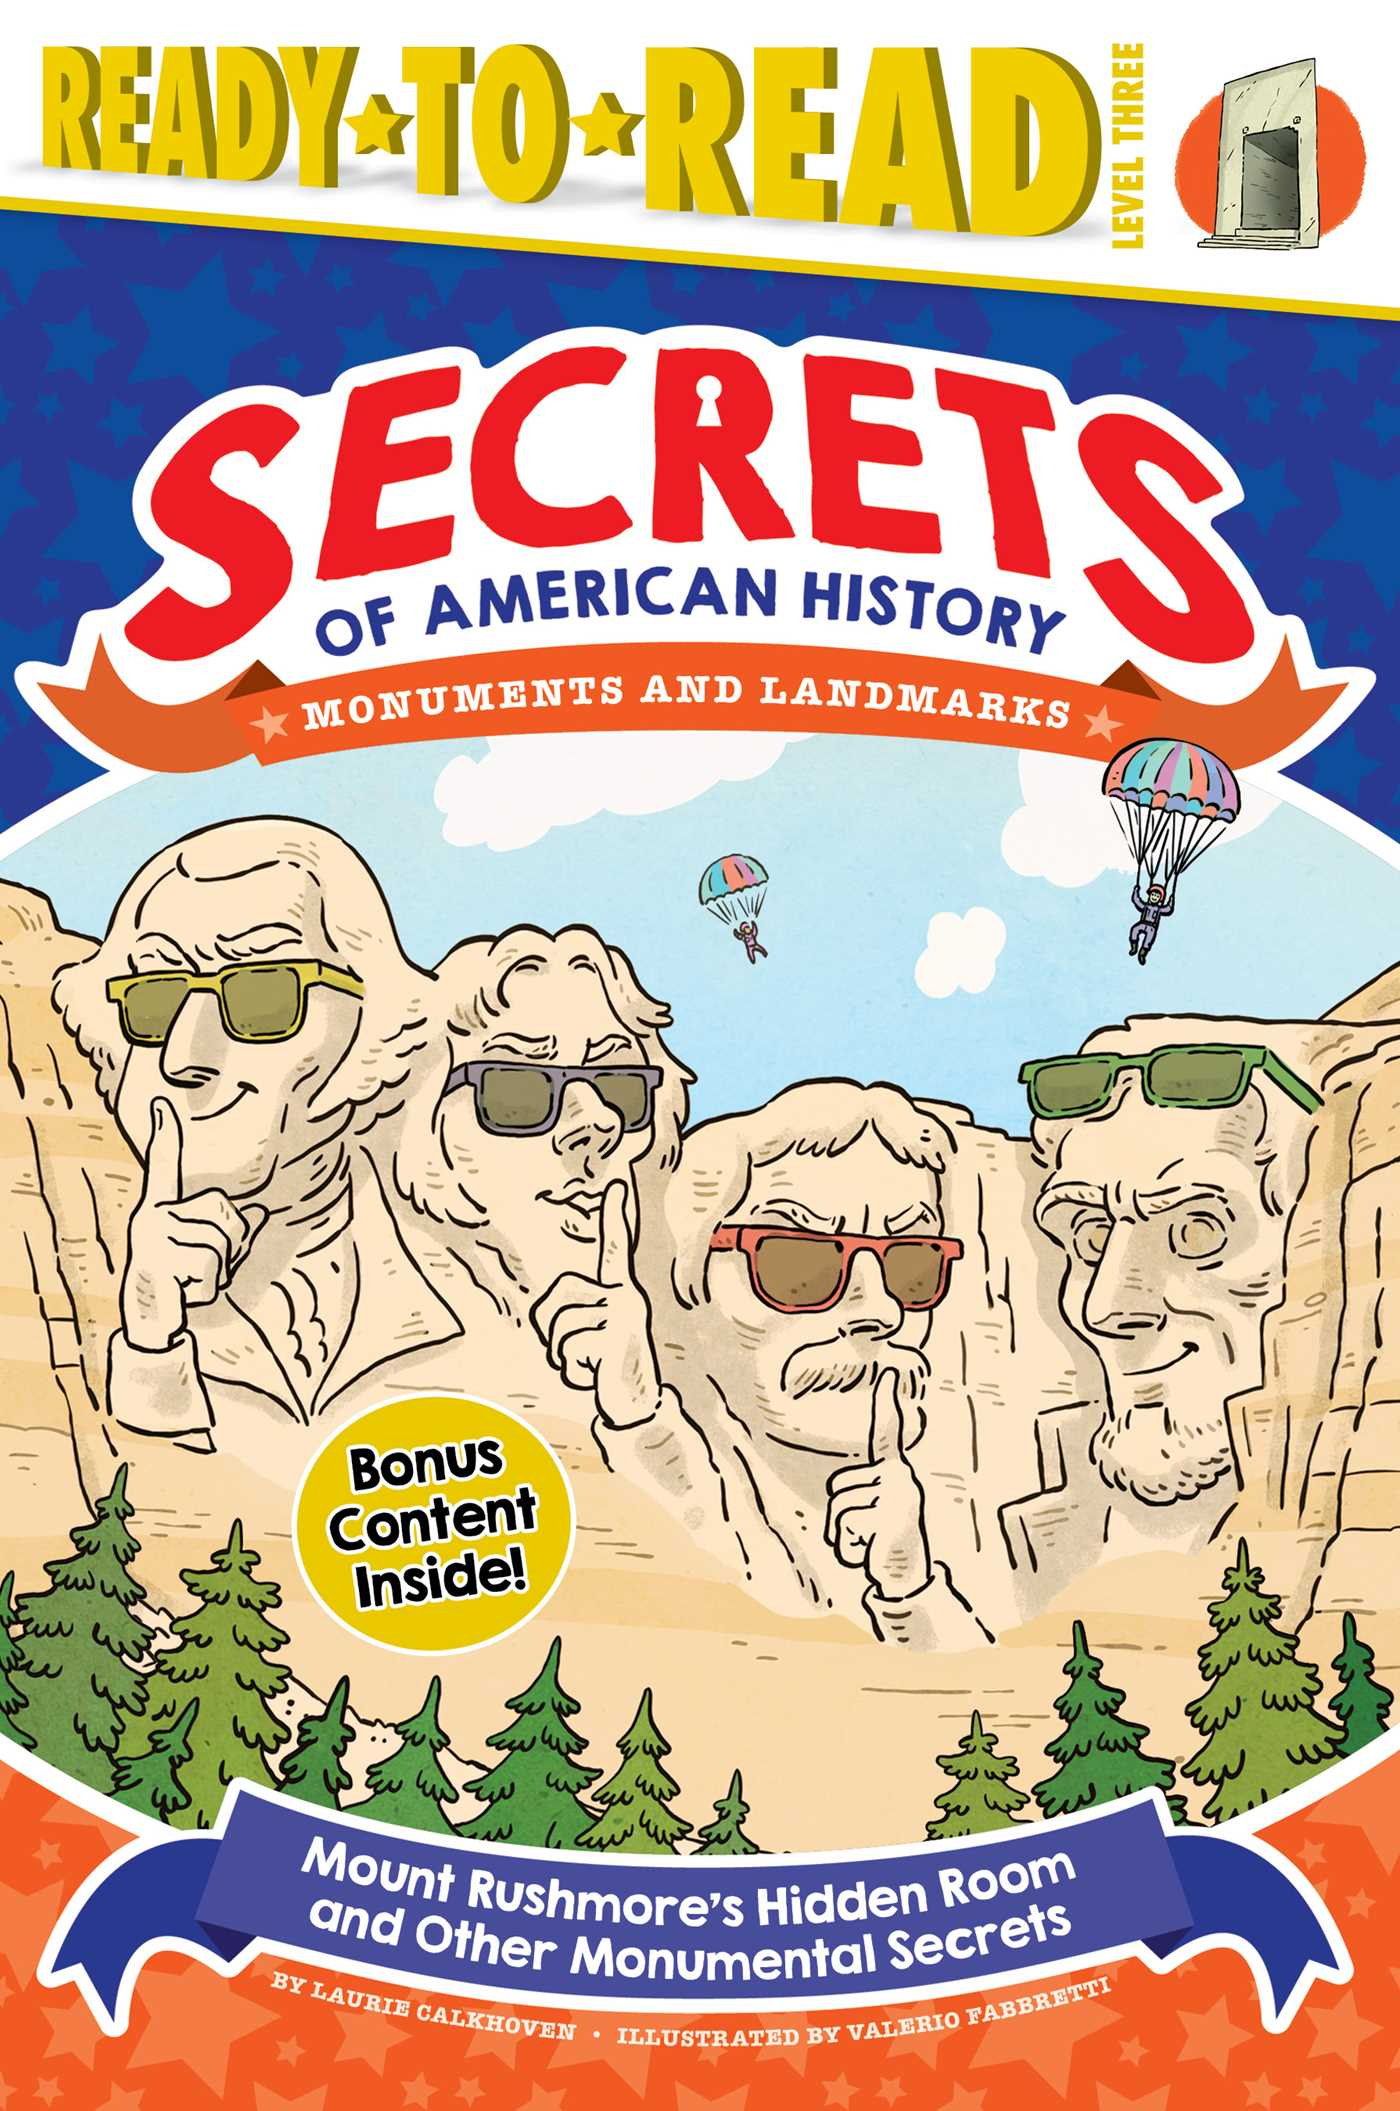 Mount rushmores hidden room and other monumental secrets 9781534429246 hr